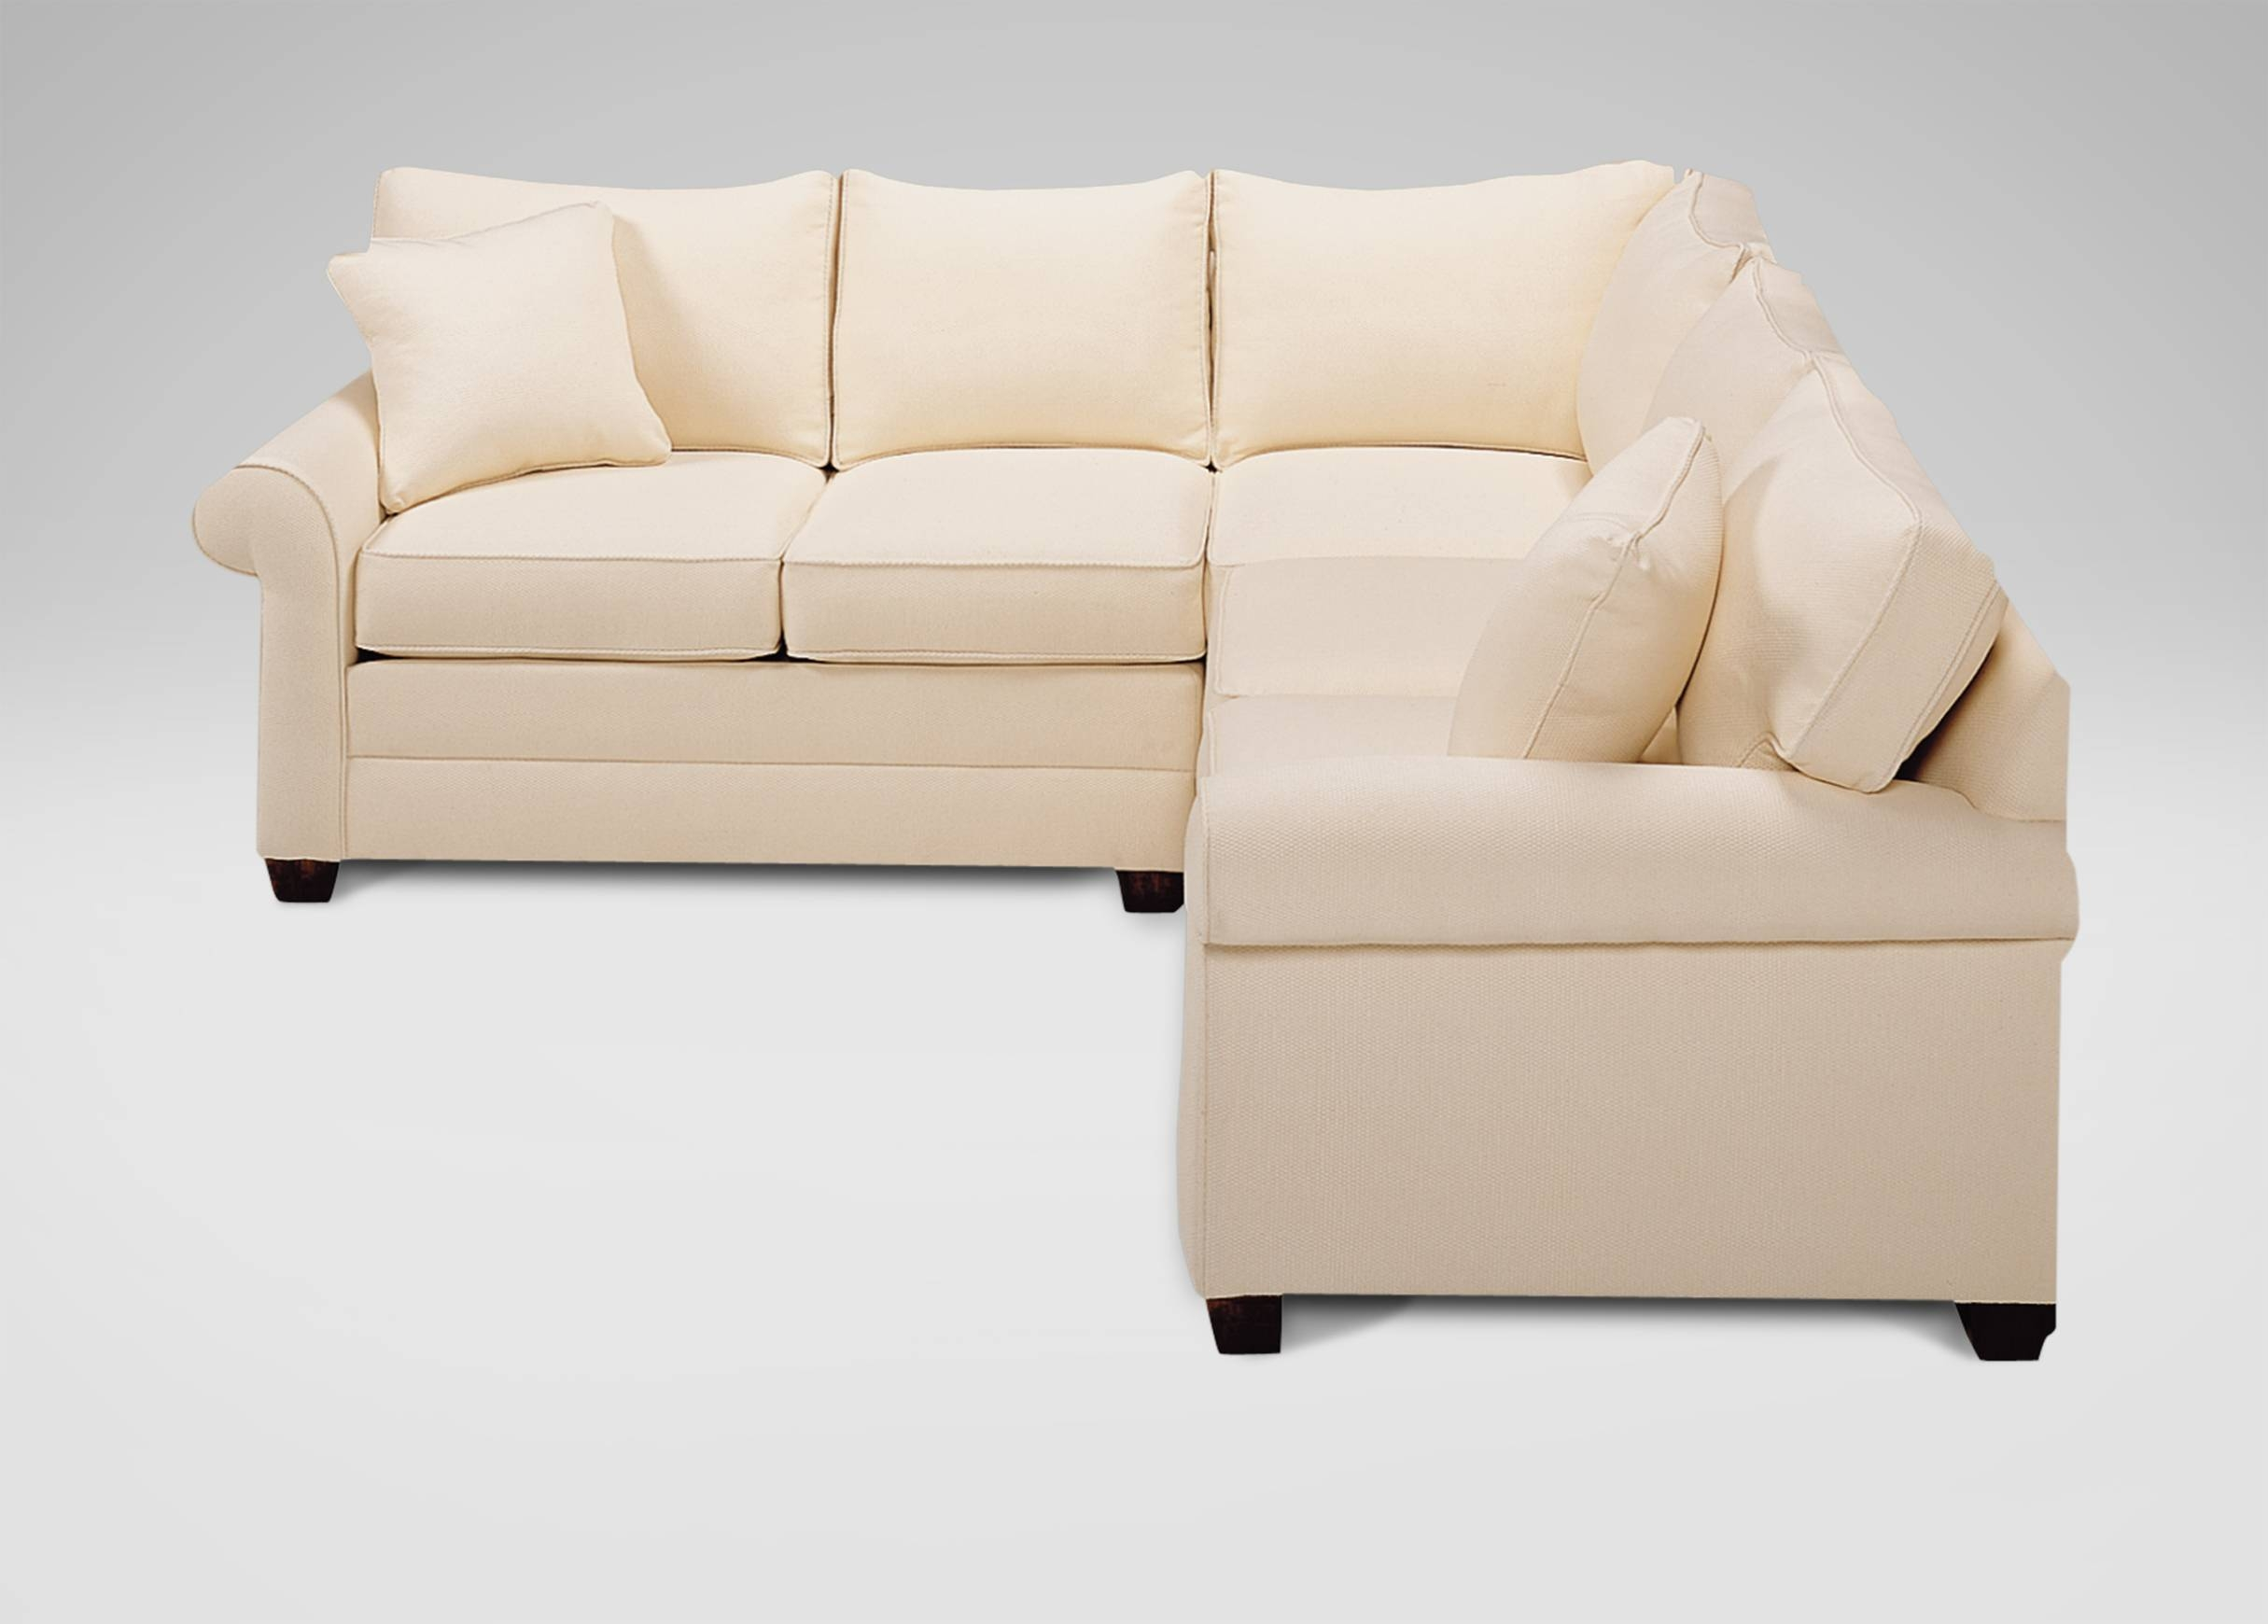 Bennett Roll Arm Sectional | Sectionals Within Ethan Allen Sectional Sofas (View 3 of 15)